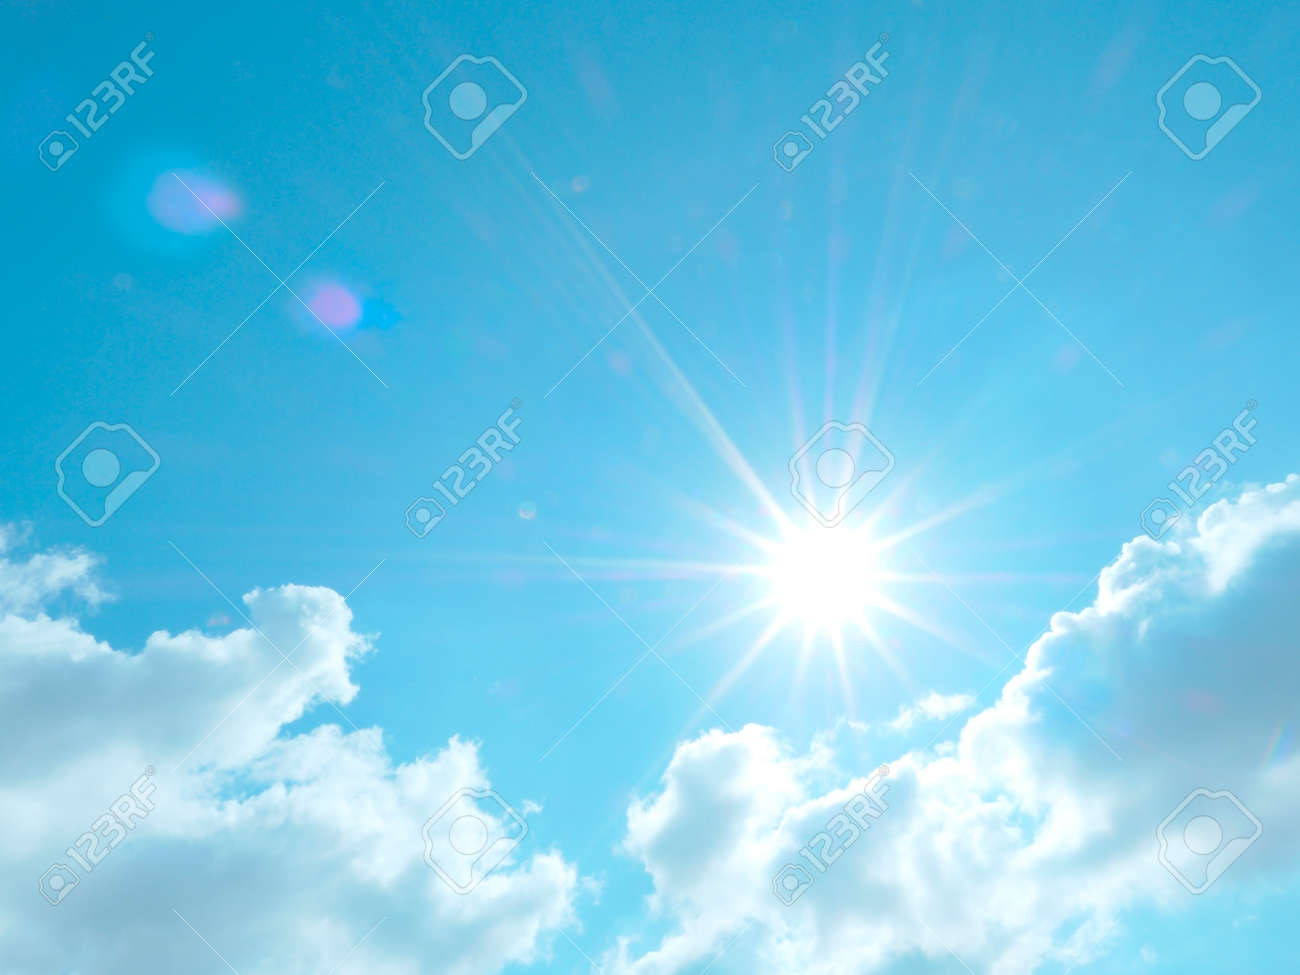 The beautiful sky with clouds and sun, real photo - 159701156